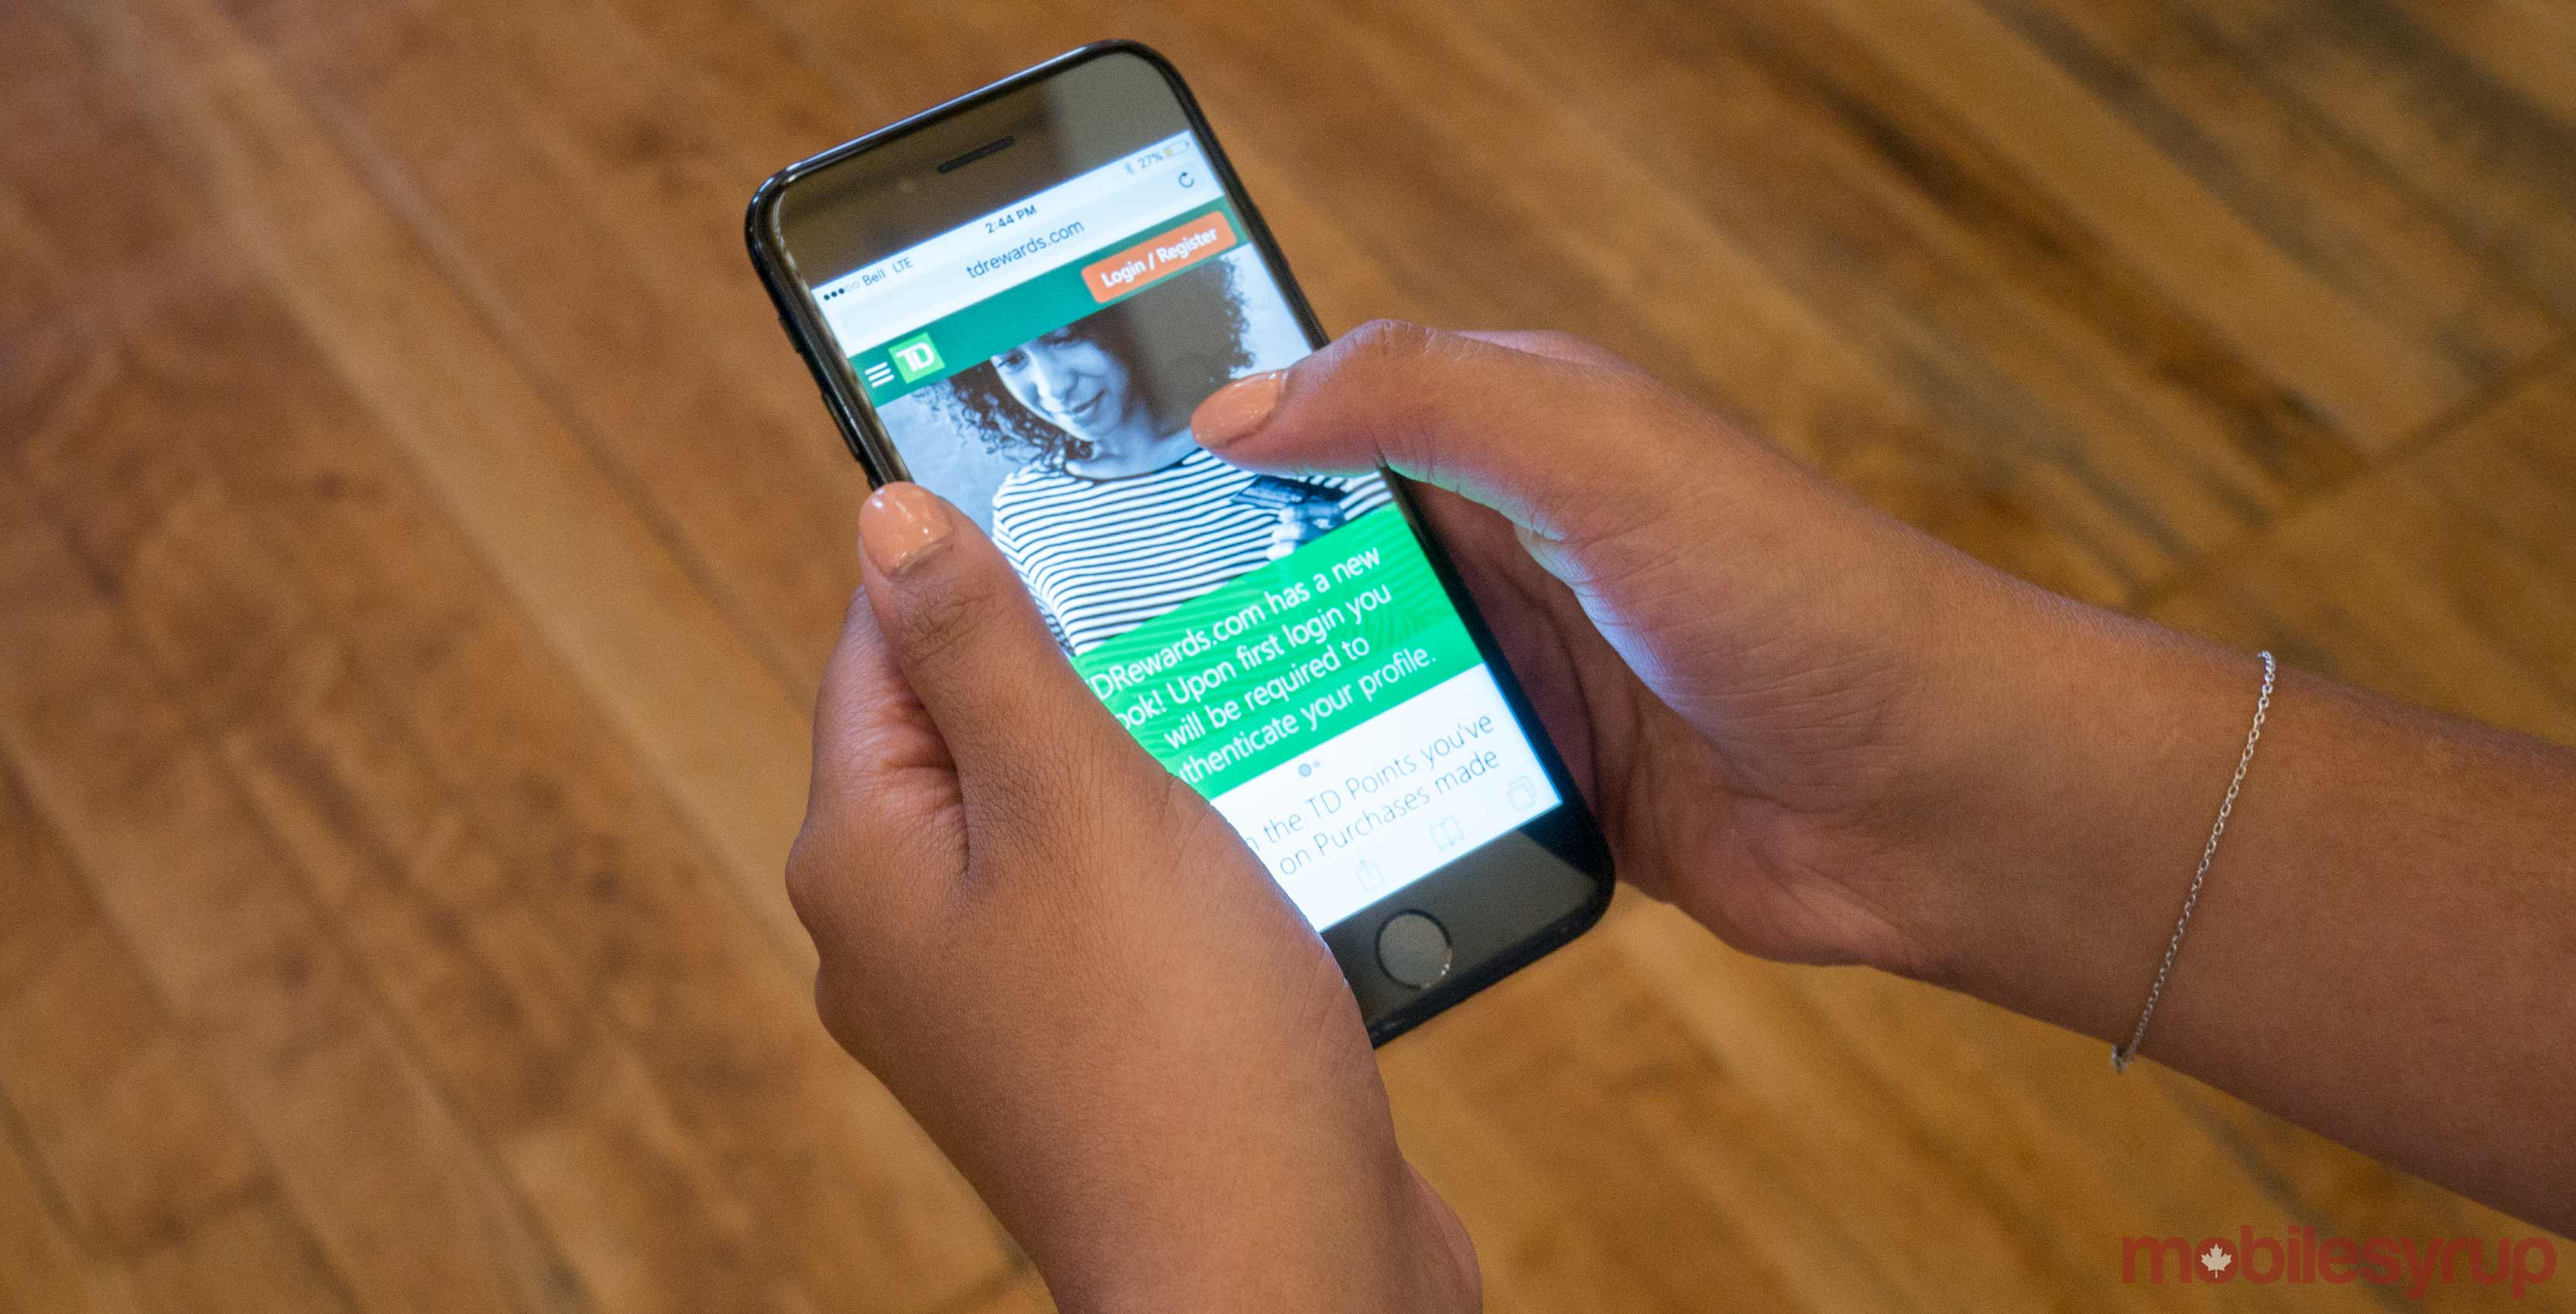 An image showing a hand holding an iPhone 7 with the TD Rewards website on-screen